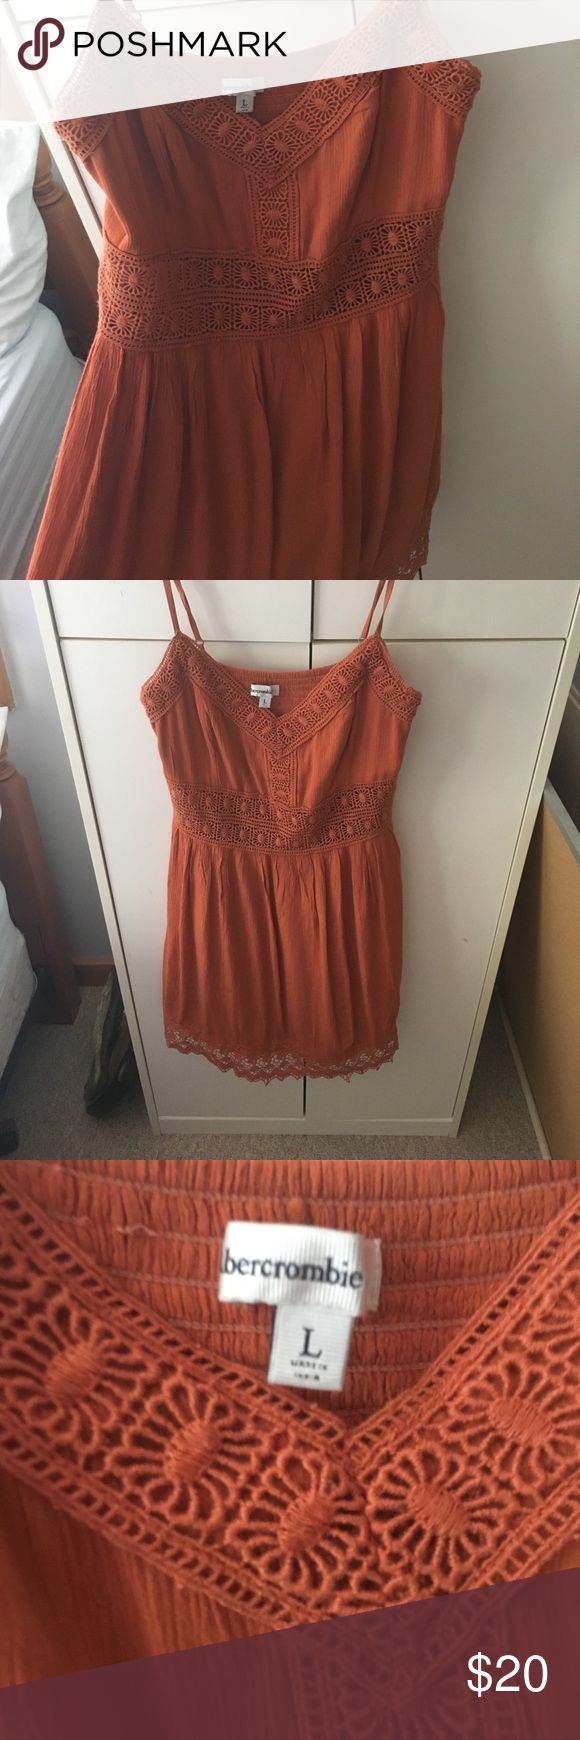 Selling this Orange Summer Dress - Abercrombie and Fitch on Poshmark! My username is: fashiongill. #shopmycloset #poshmark #fashion #shopping #style #forsale #Abercrombie & Fitch #Dresses & Skirts